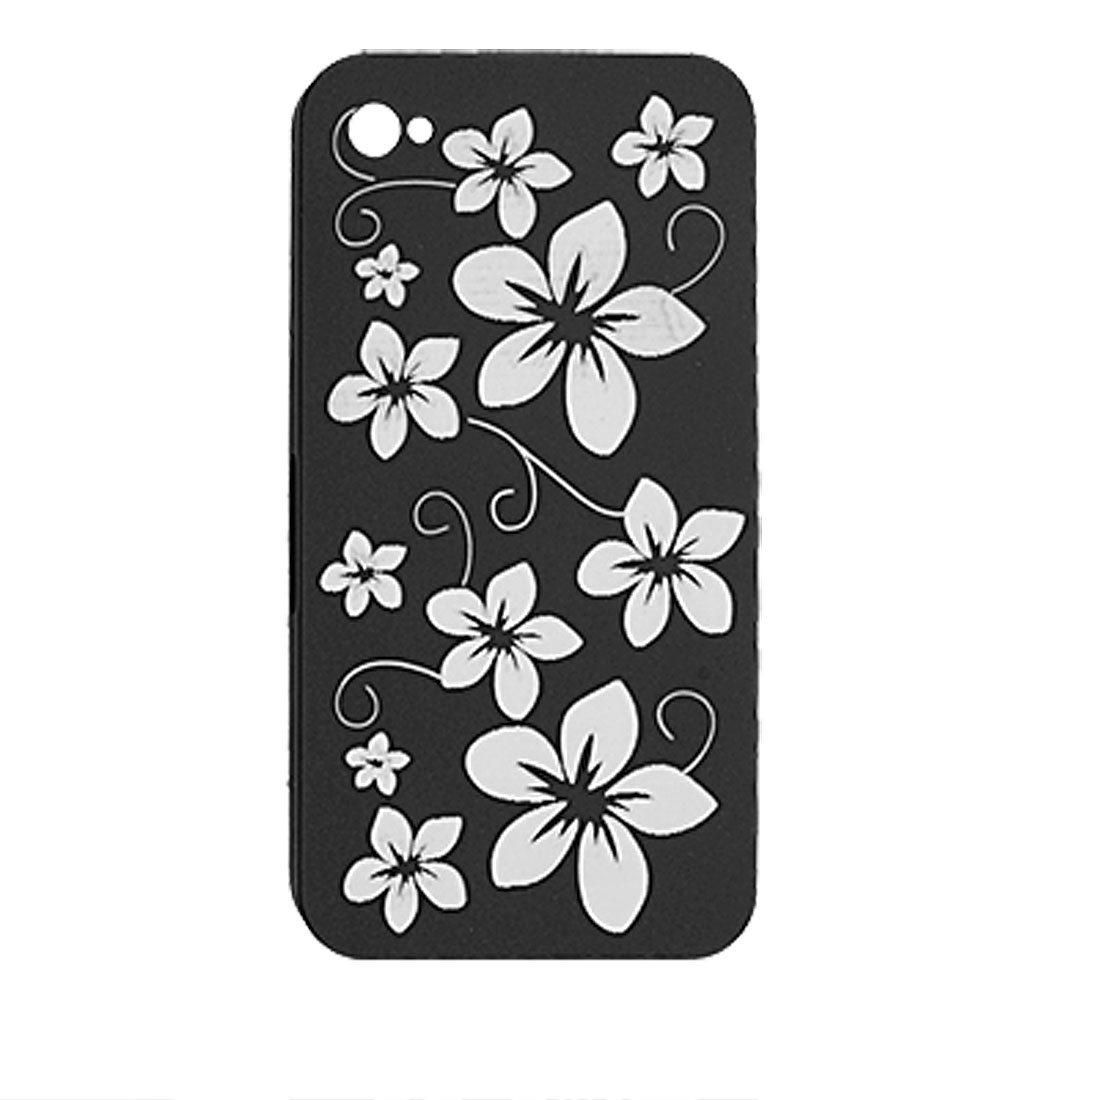 Black Plastic Case Peach Flower Pattern for iPhone 4 4G